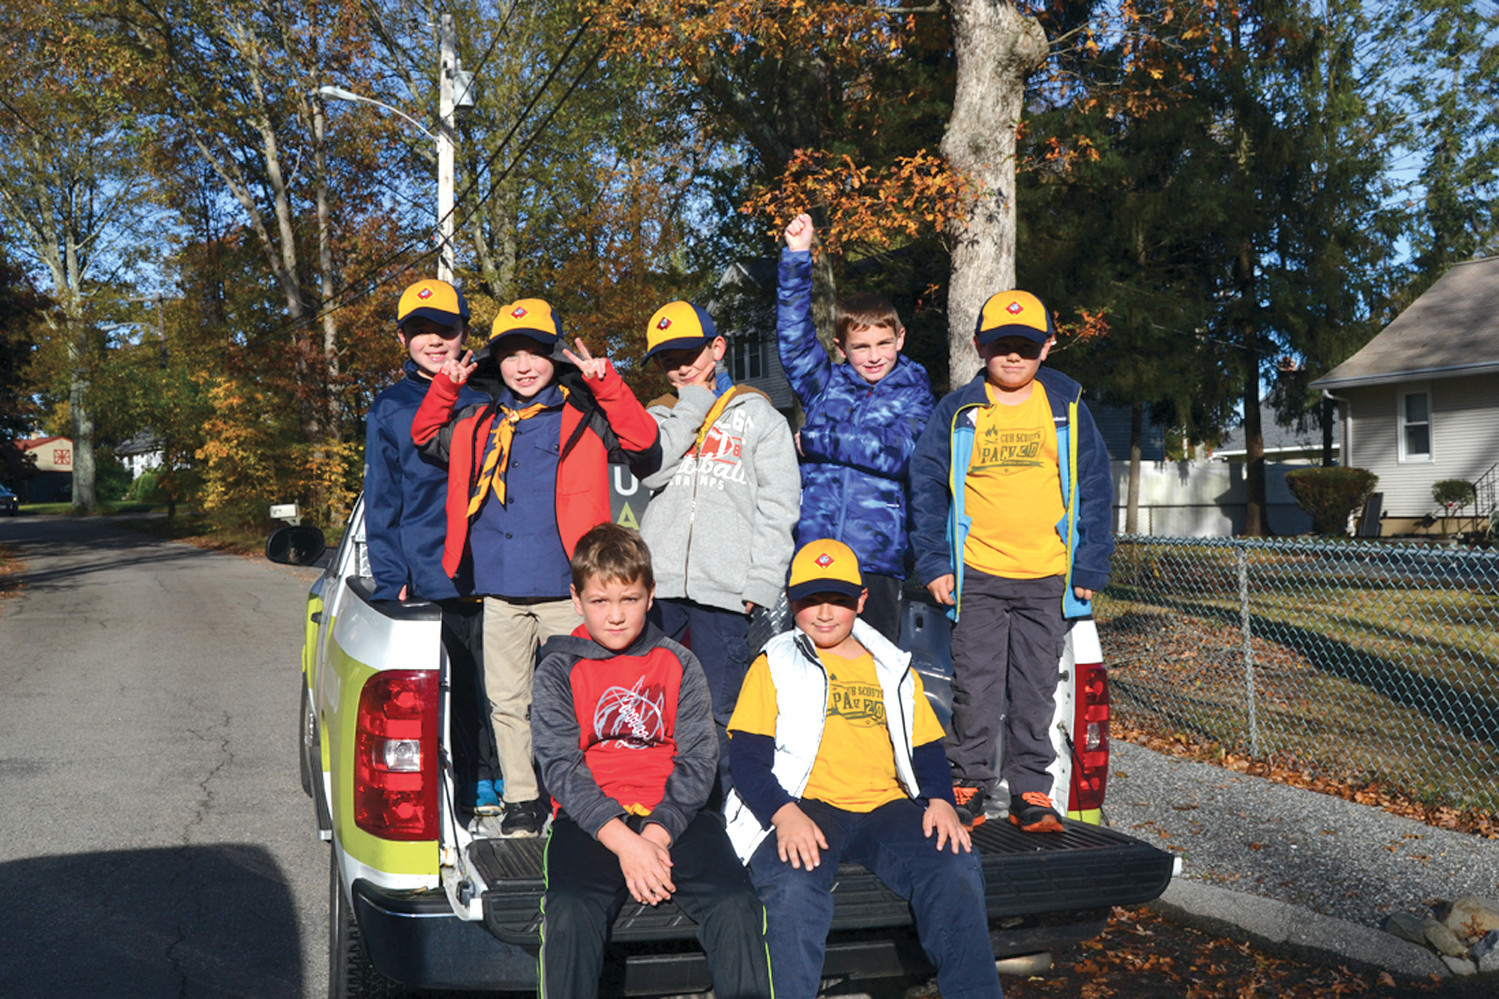 PICKUP IN A PICK-UP: Cub Scouts of Pack 20 hit the neighborhoods surrounding Oak Swamp on Saturday, running from house to house and placing donations in the back of a pick-up truck.